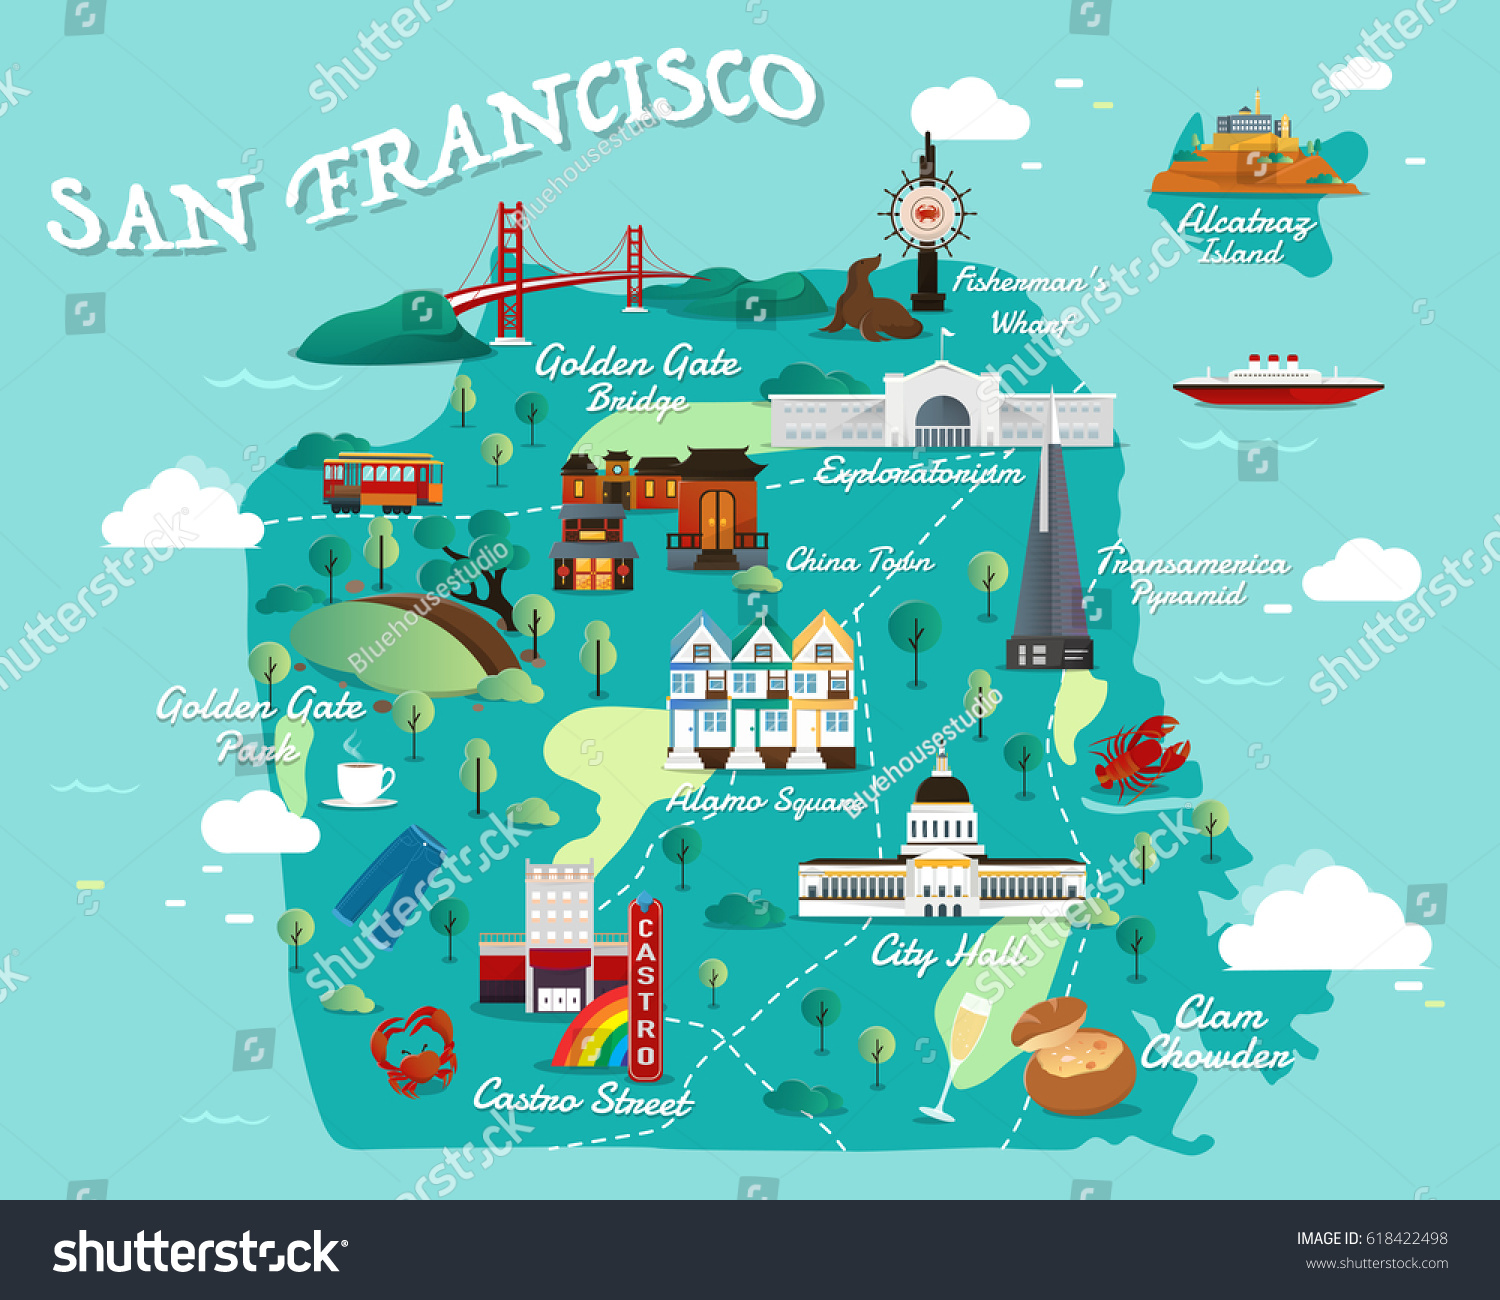 Map san francisco attractions vector illustration stock - San francisco tourist information office ...